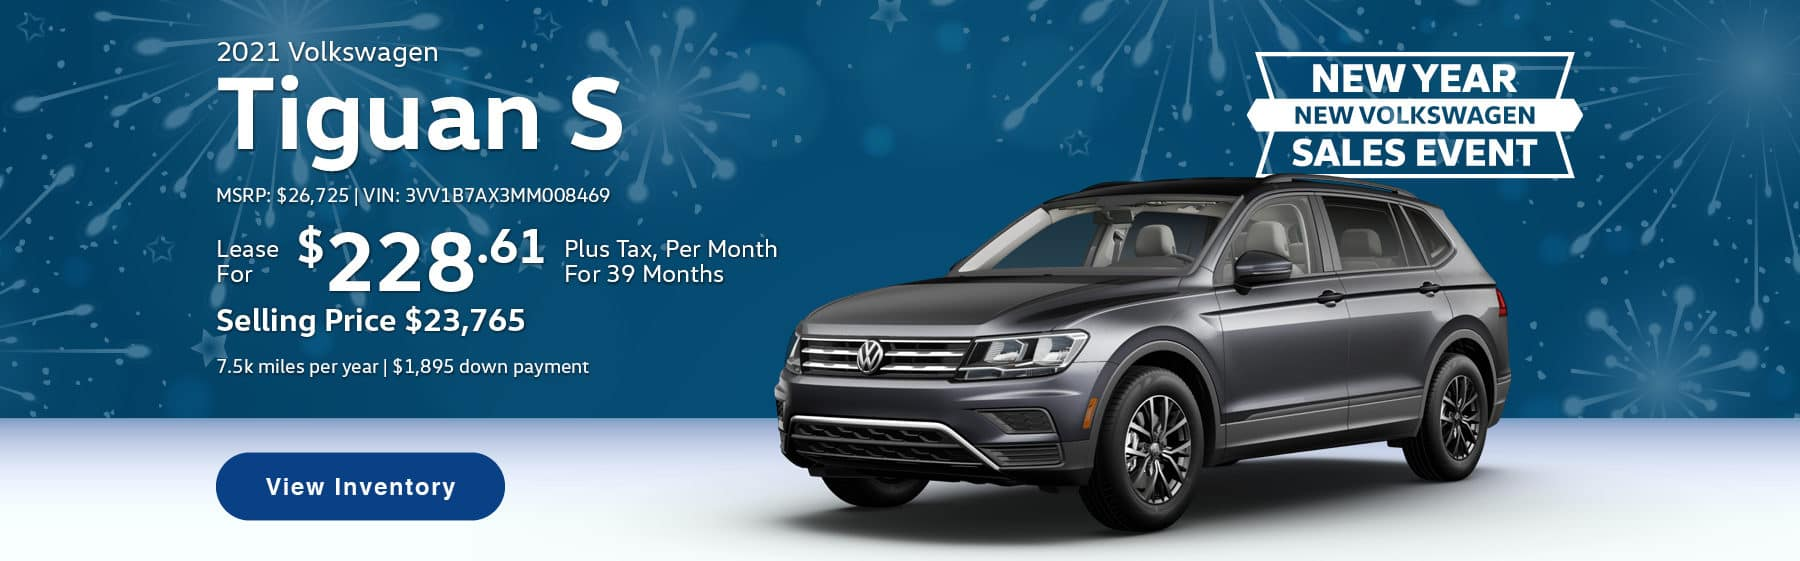 Lease the 2021 Tiguan S for $228.61 per month, plus tax for 39 months. Selling price is $23,765. 7,500 miles per year. $1,895 down payment. $26,725 MSRP. Vin #: 3VV1B7AX3MM008469.